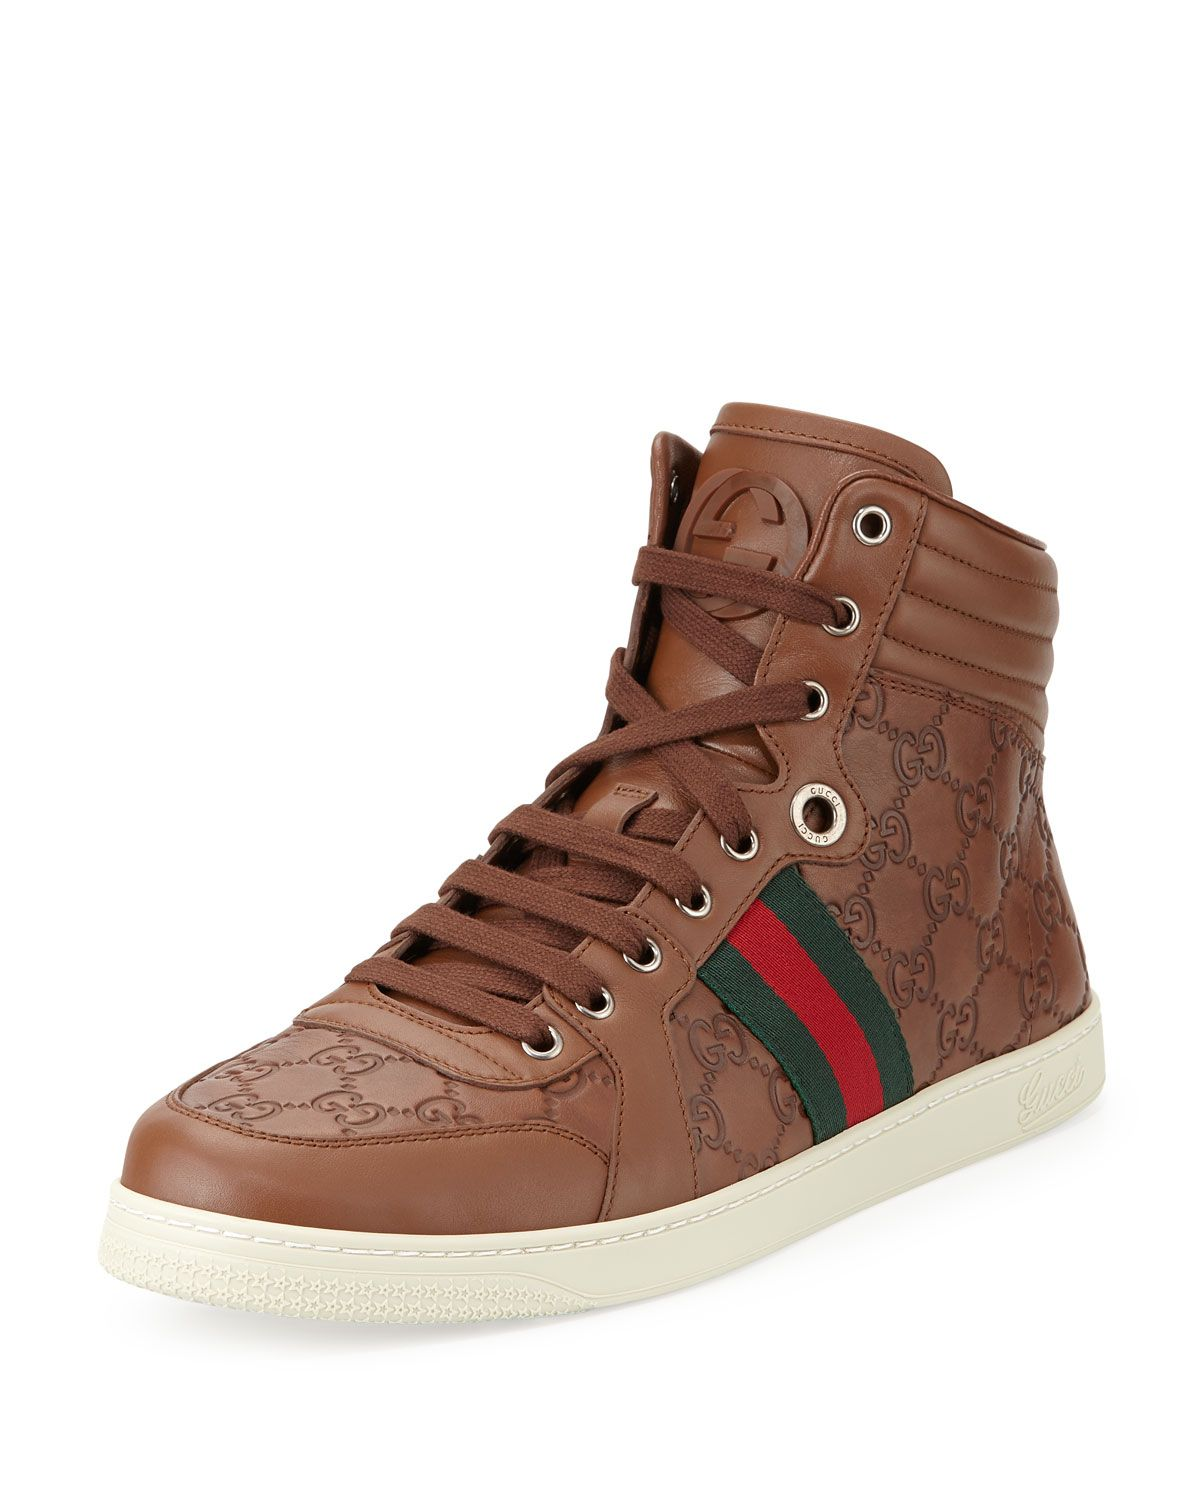 60a593c45af Guccissima leather sneaker with brown leather and signature green red green  web detail. Interlocking